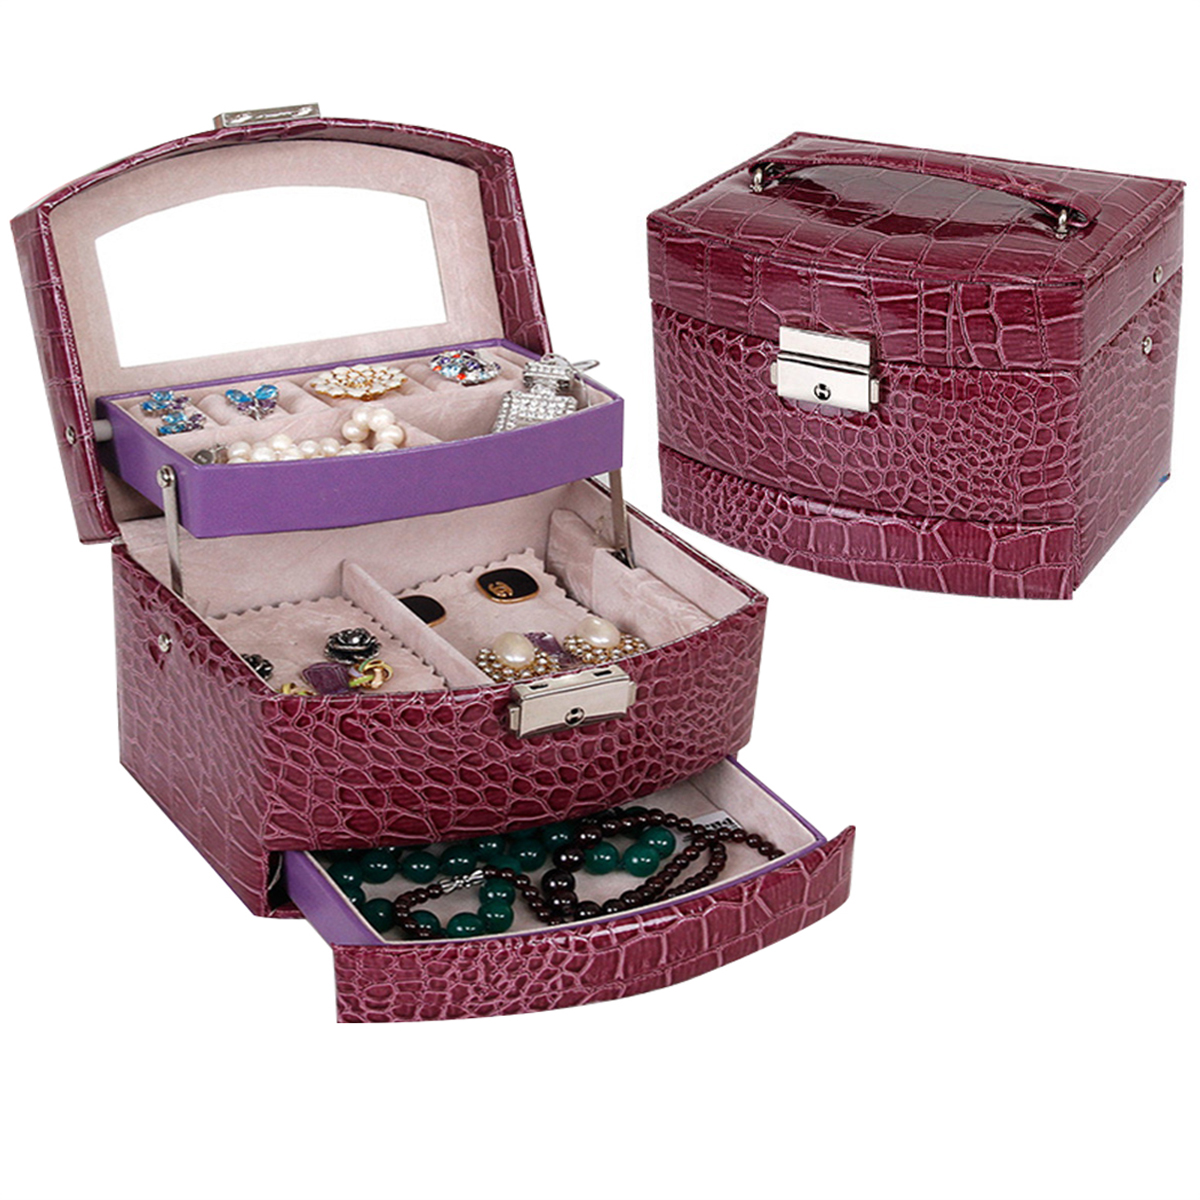 Laspera Multilayer Automatic Leather Jewelry Box Three-layer Storage Box For Women Earring Ring Cosmetic Organizer Casket